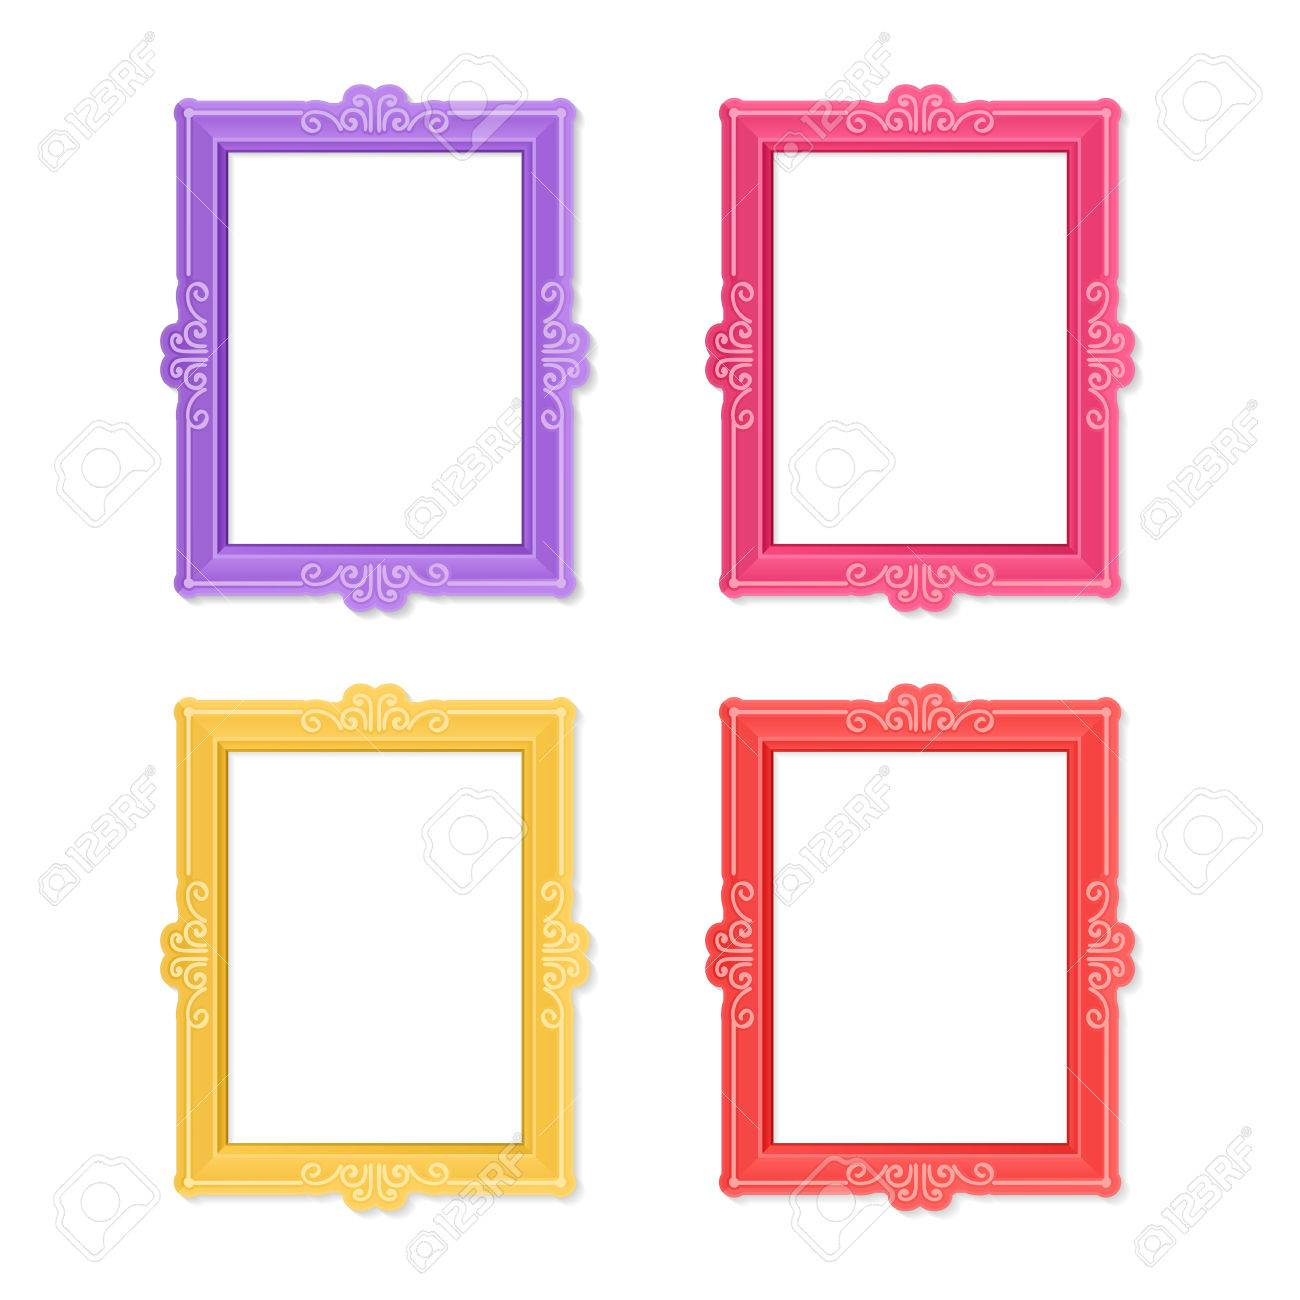 realistic design photo frames on white background decorative template for baby family or memories